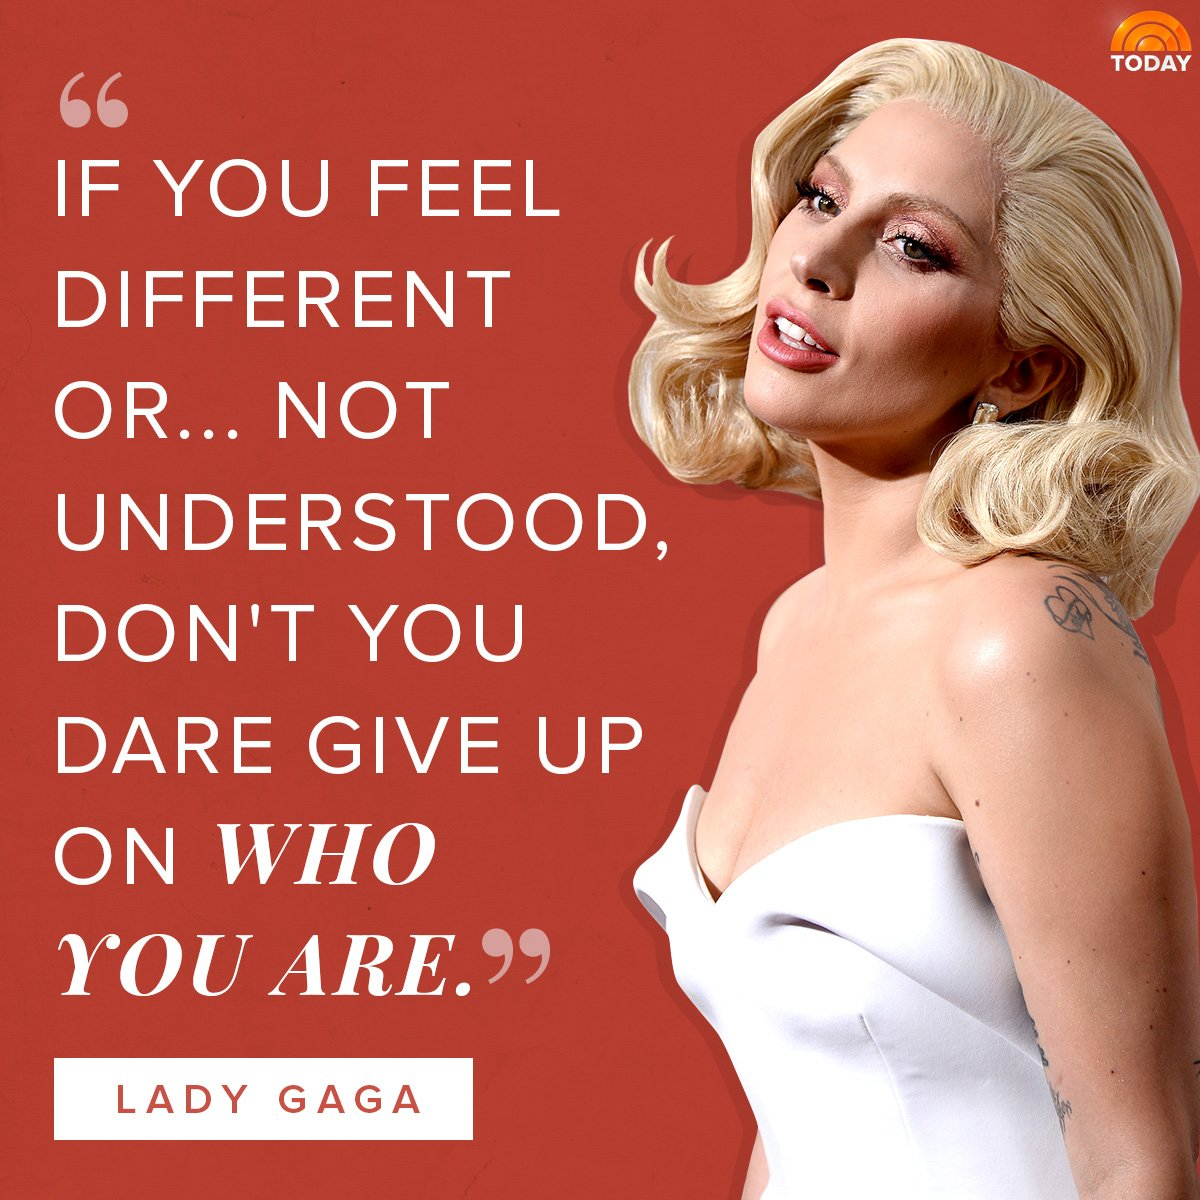 At last night's American Music Awards, @ladygaga took a moment to send an important message to her fans